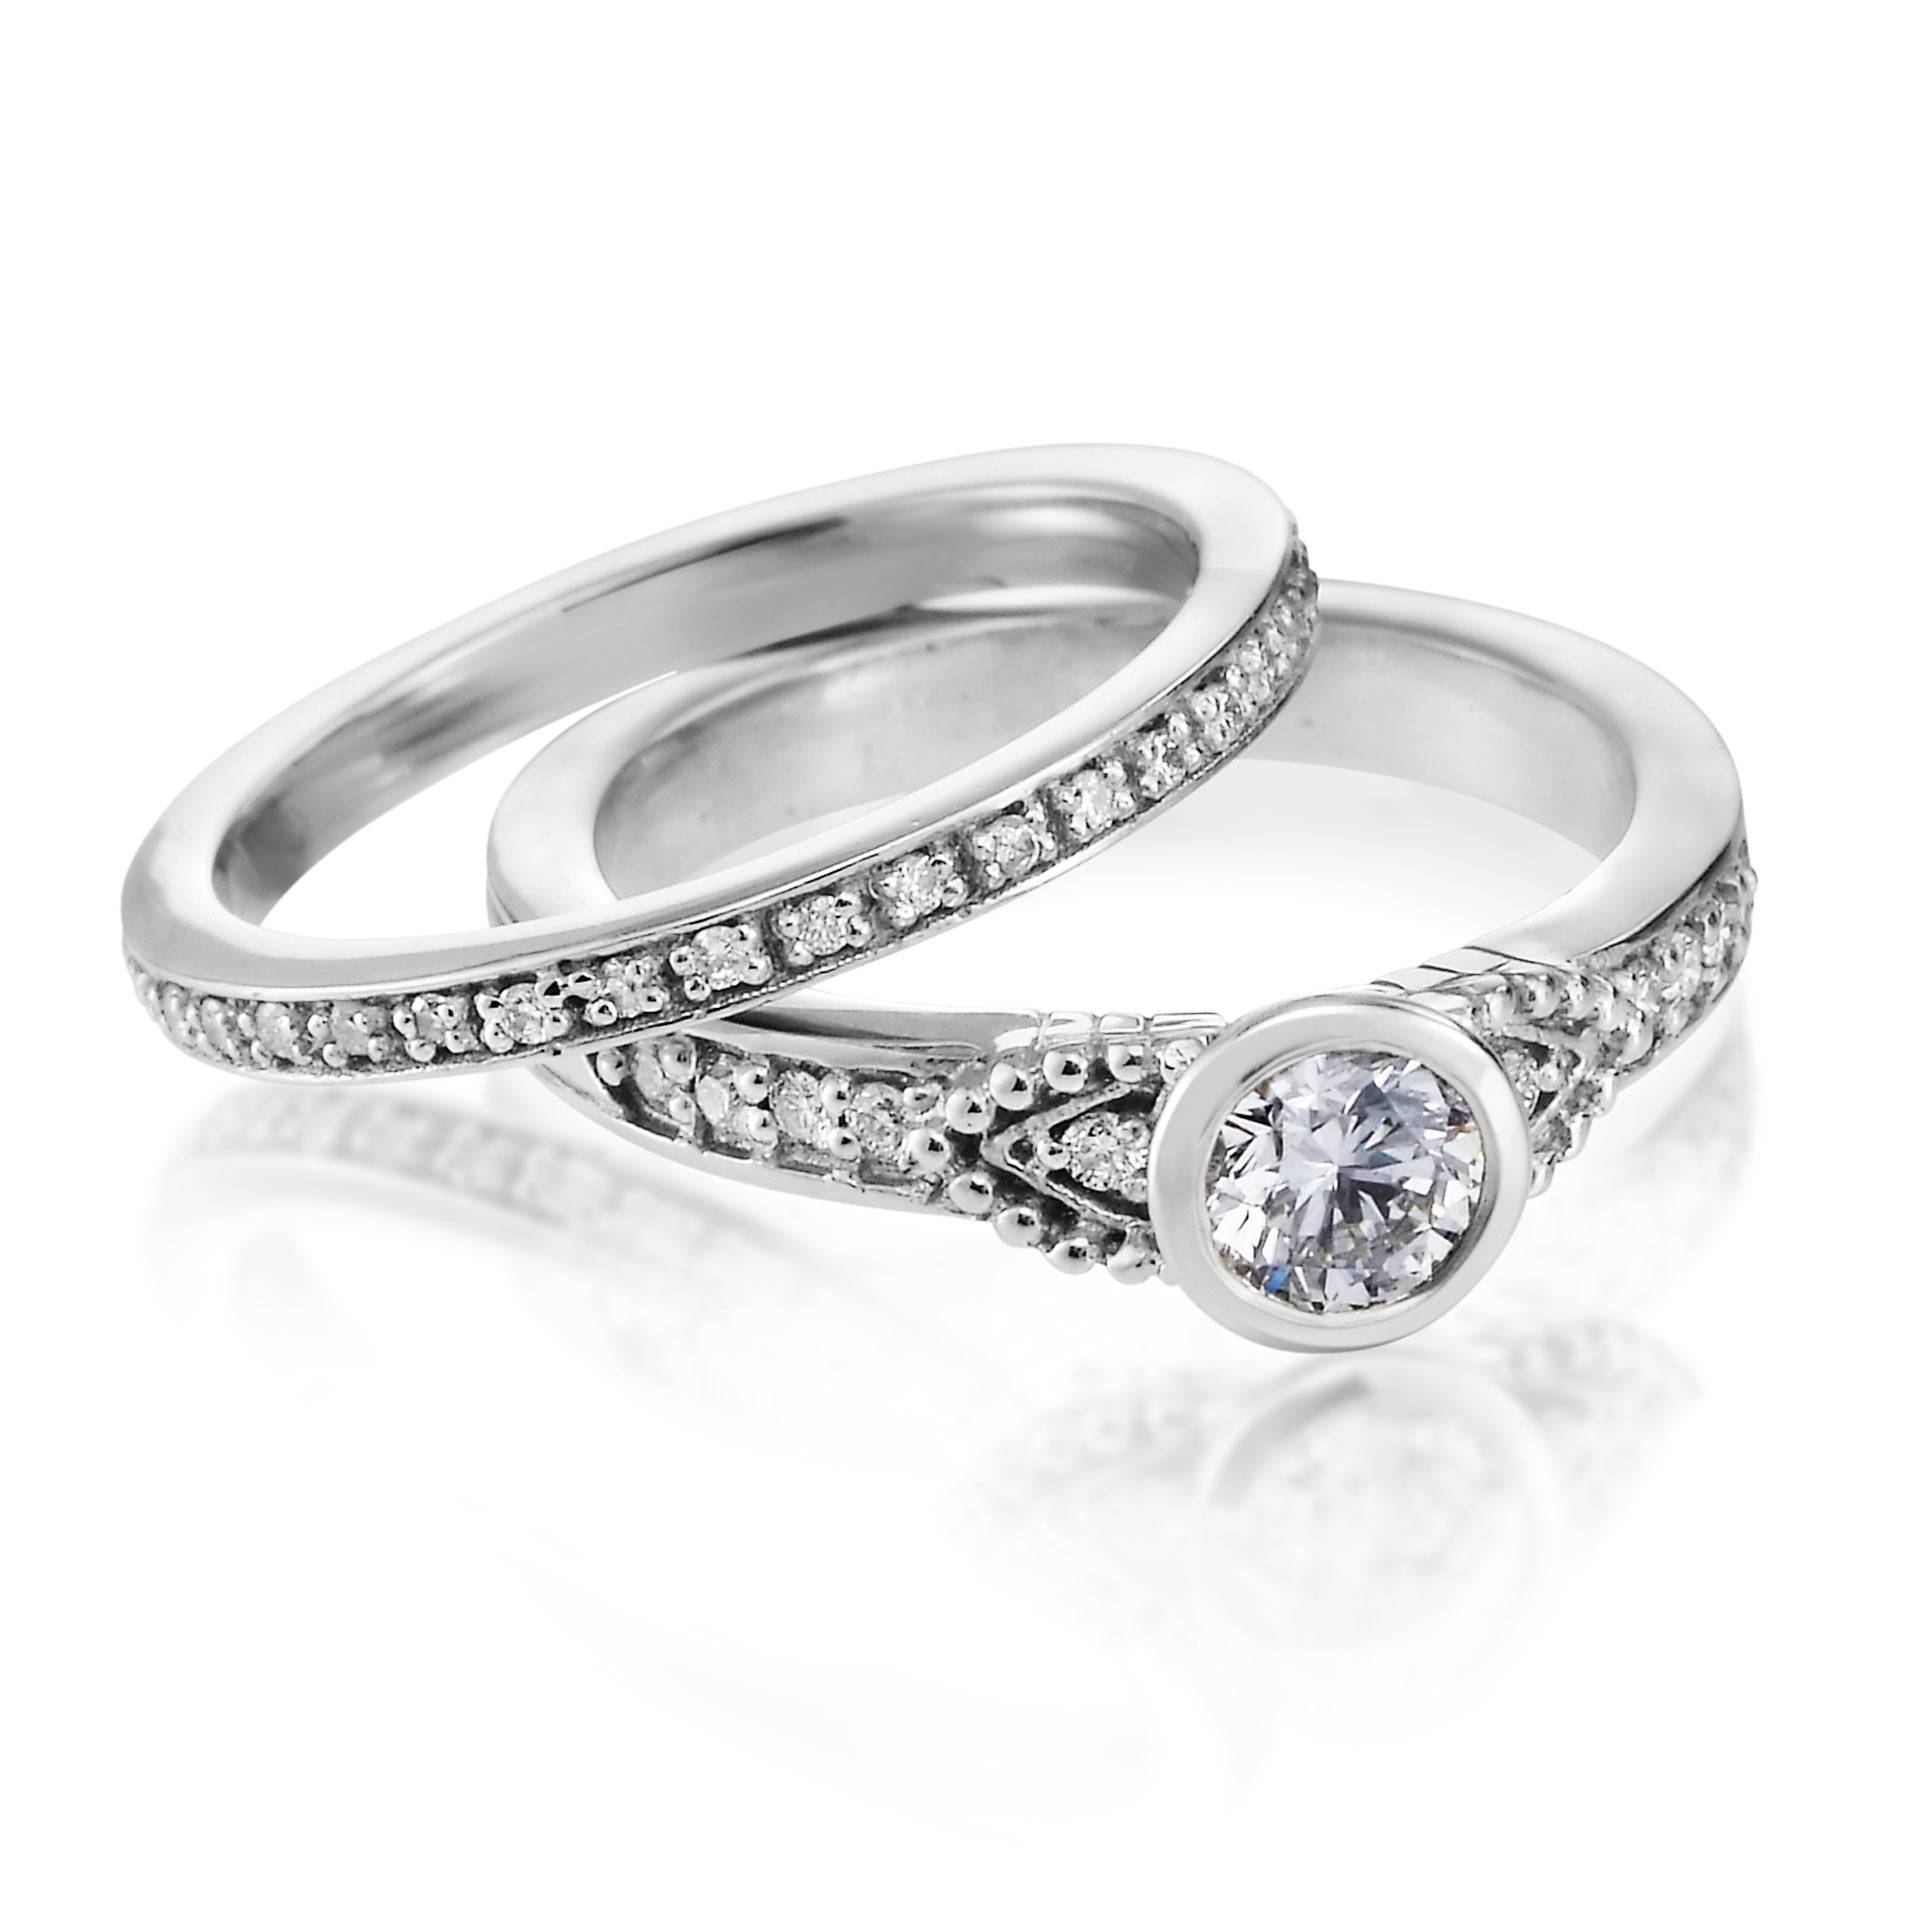 Simple Silver Diamond Wedding Ringswedwebtalks | Wedwebtalks Throughout Silver Diamond Wedding Rings (View 9 of 15)